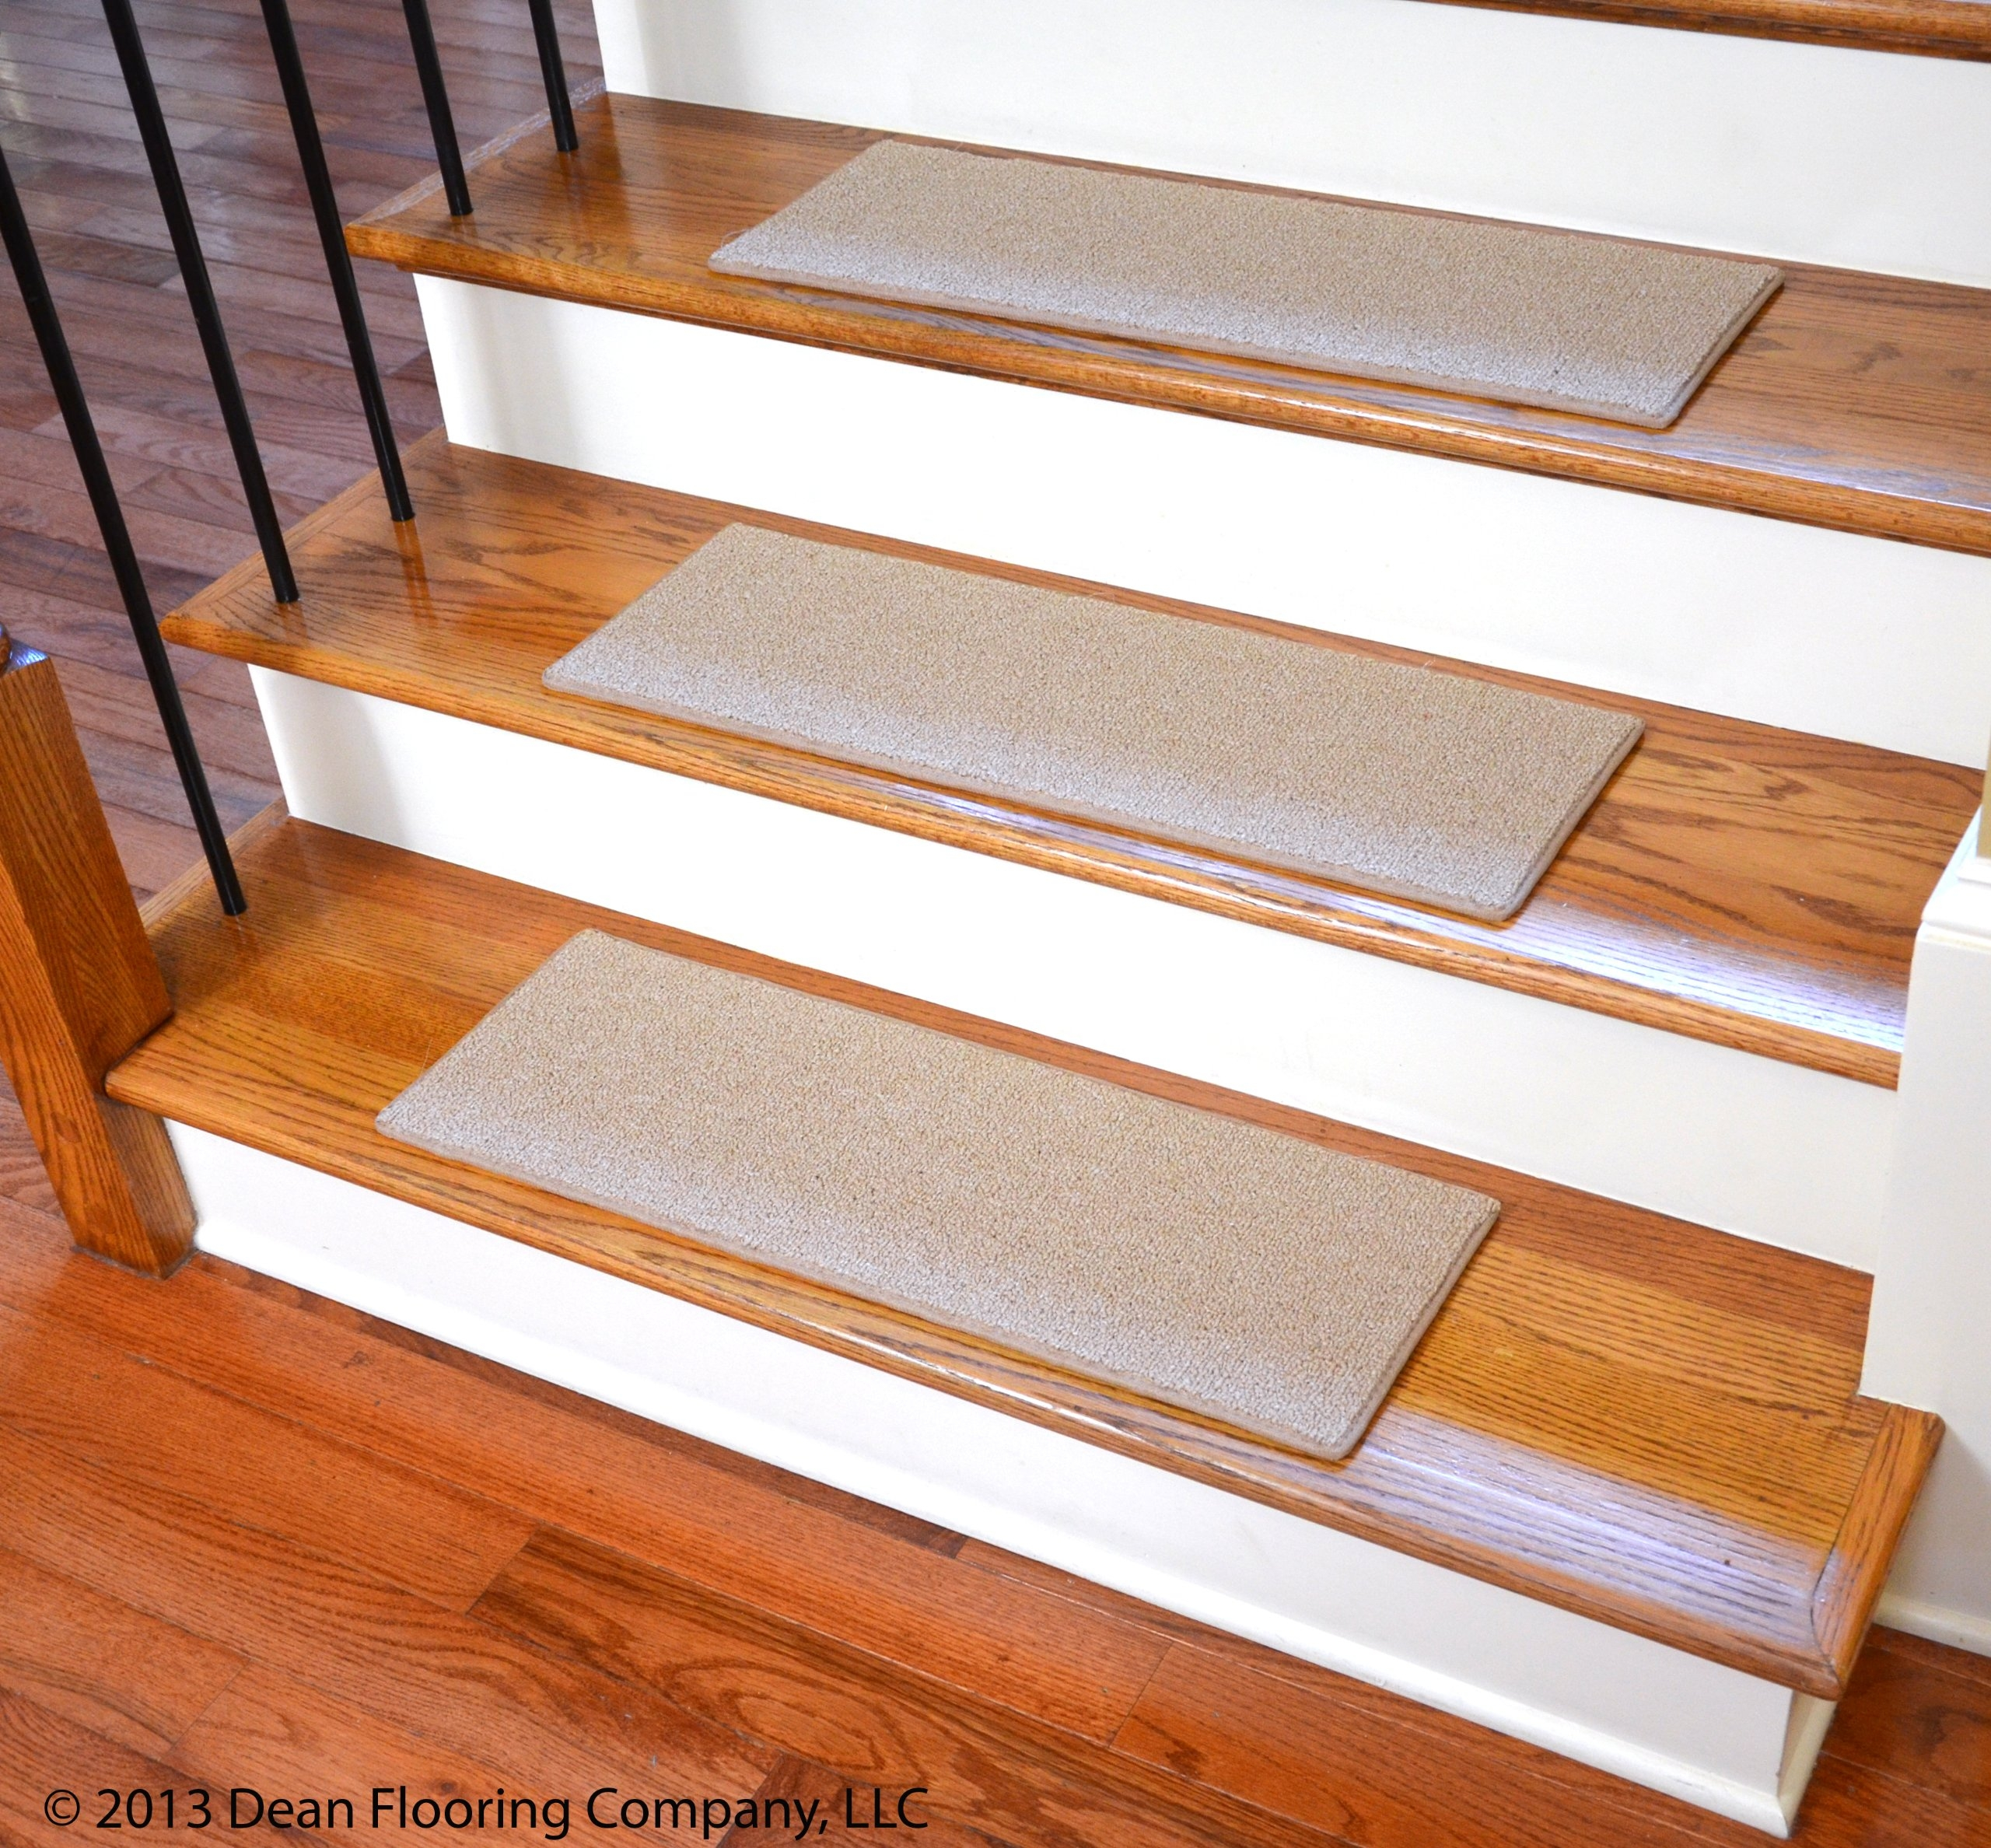 Interior Stair Tread With Non Slip Stair Treads Pertaining To Contemporary Stair Treads (Image 10 of 15)